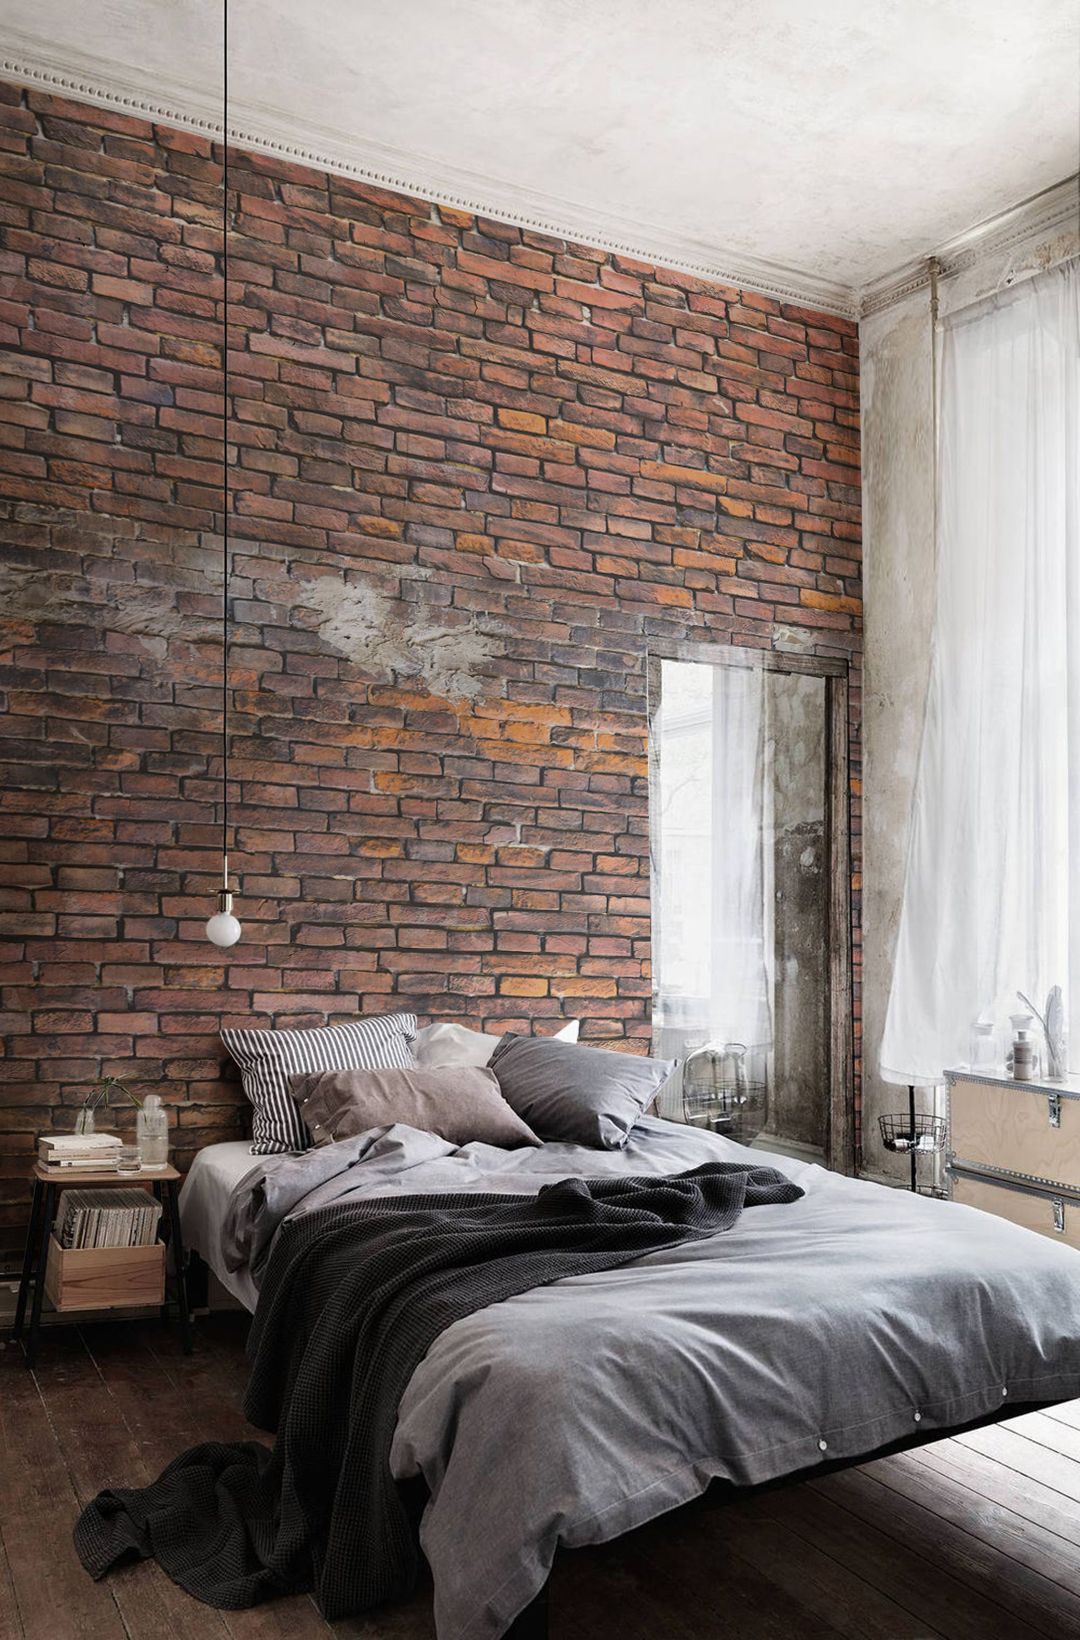 wall stunning interior wirecut products decor cut grey bricks with wire cheap brick a create